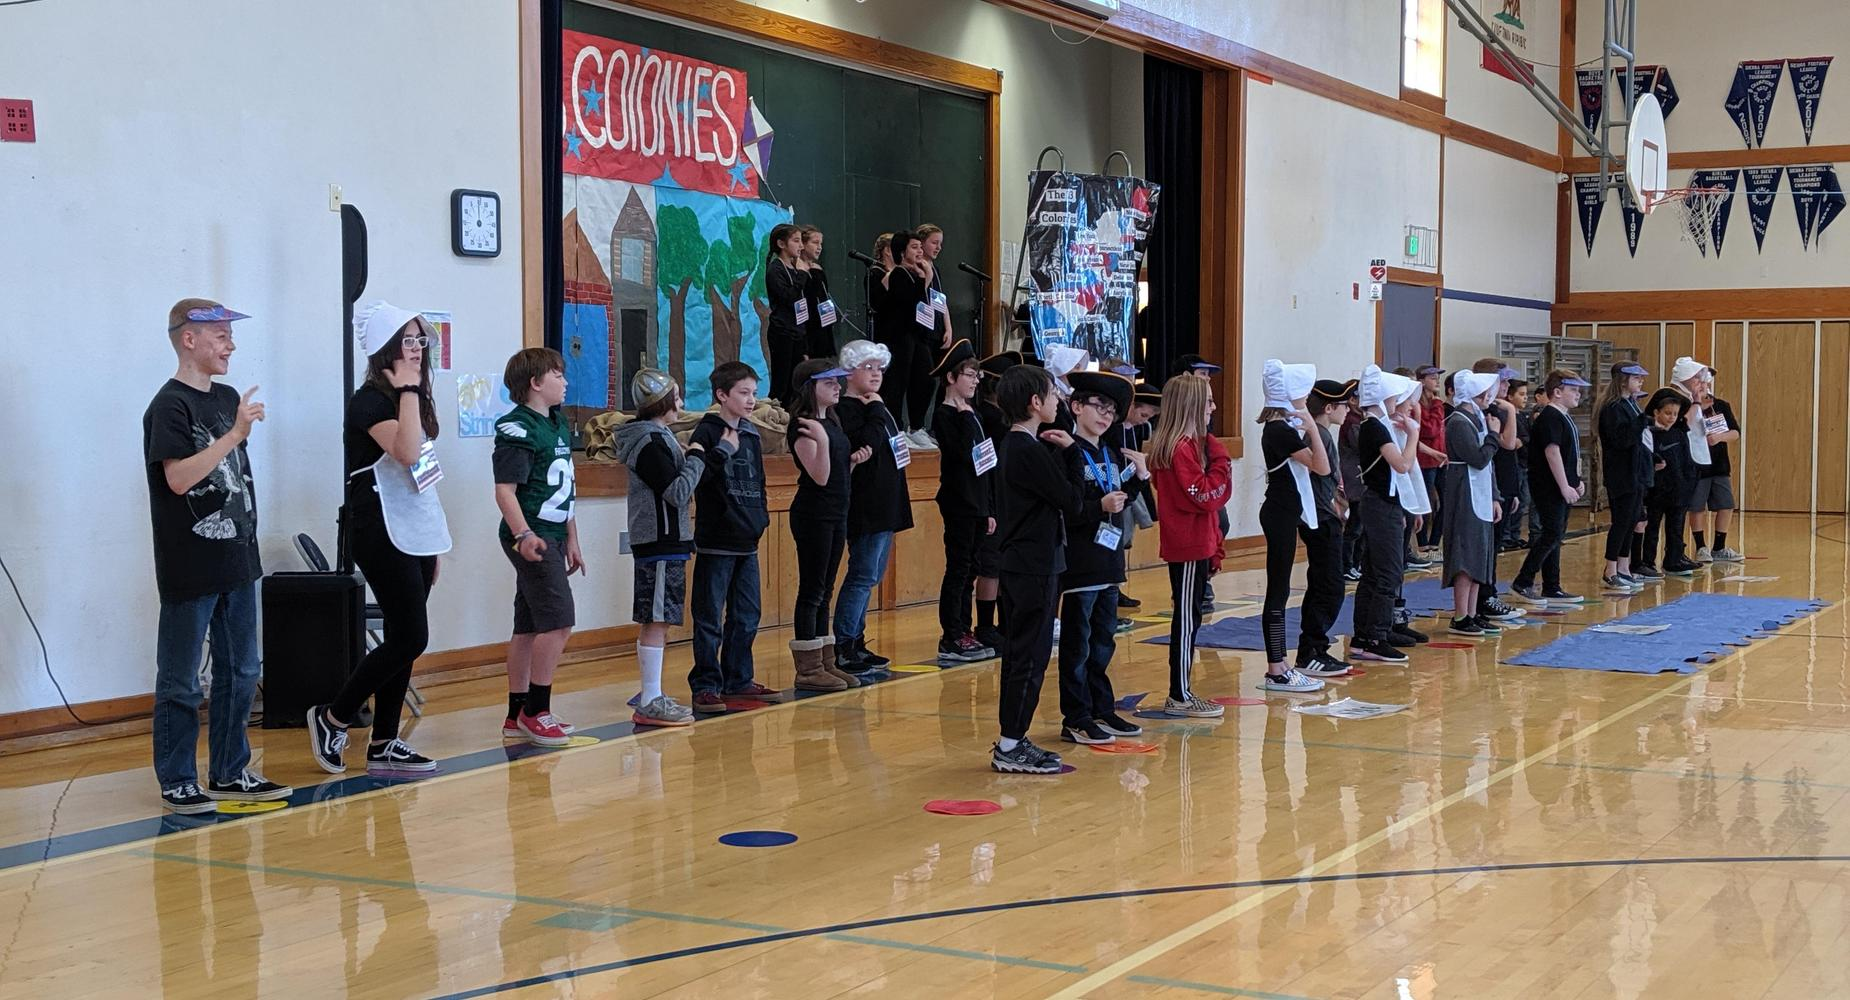 Student's singing in the gym